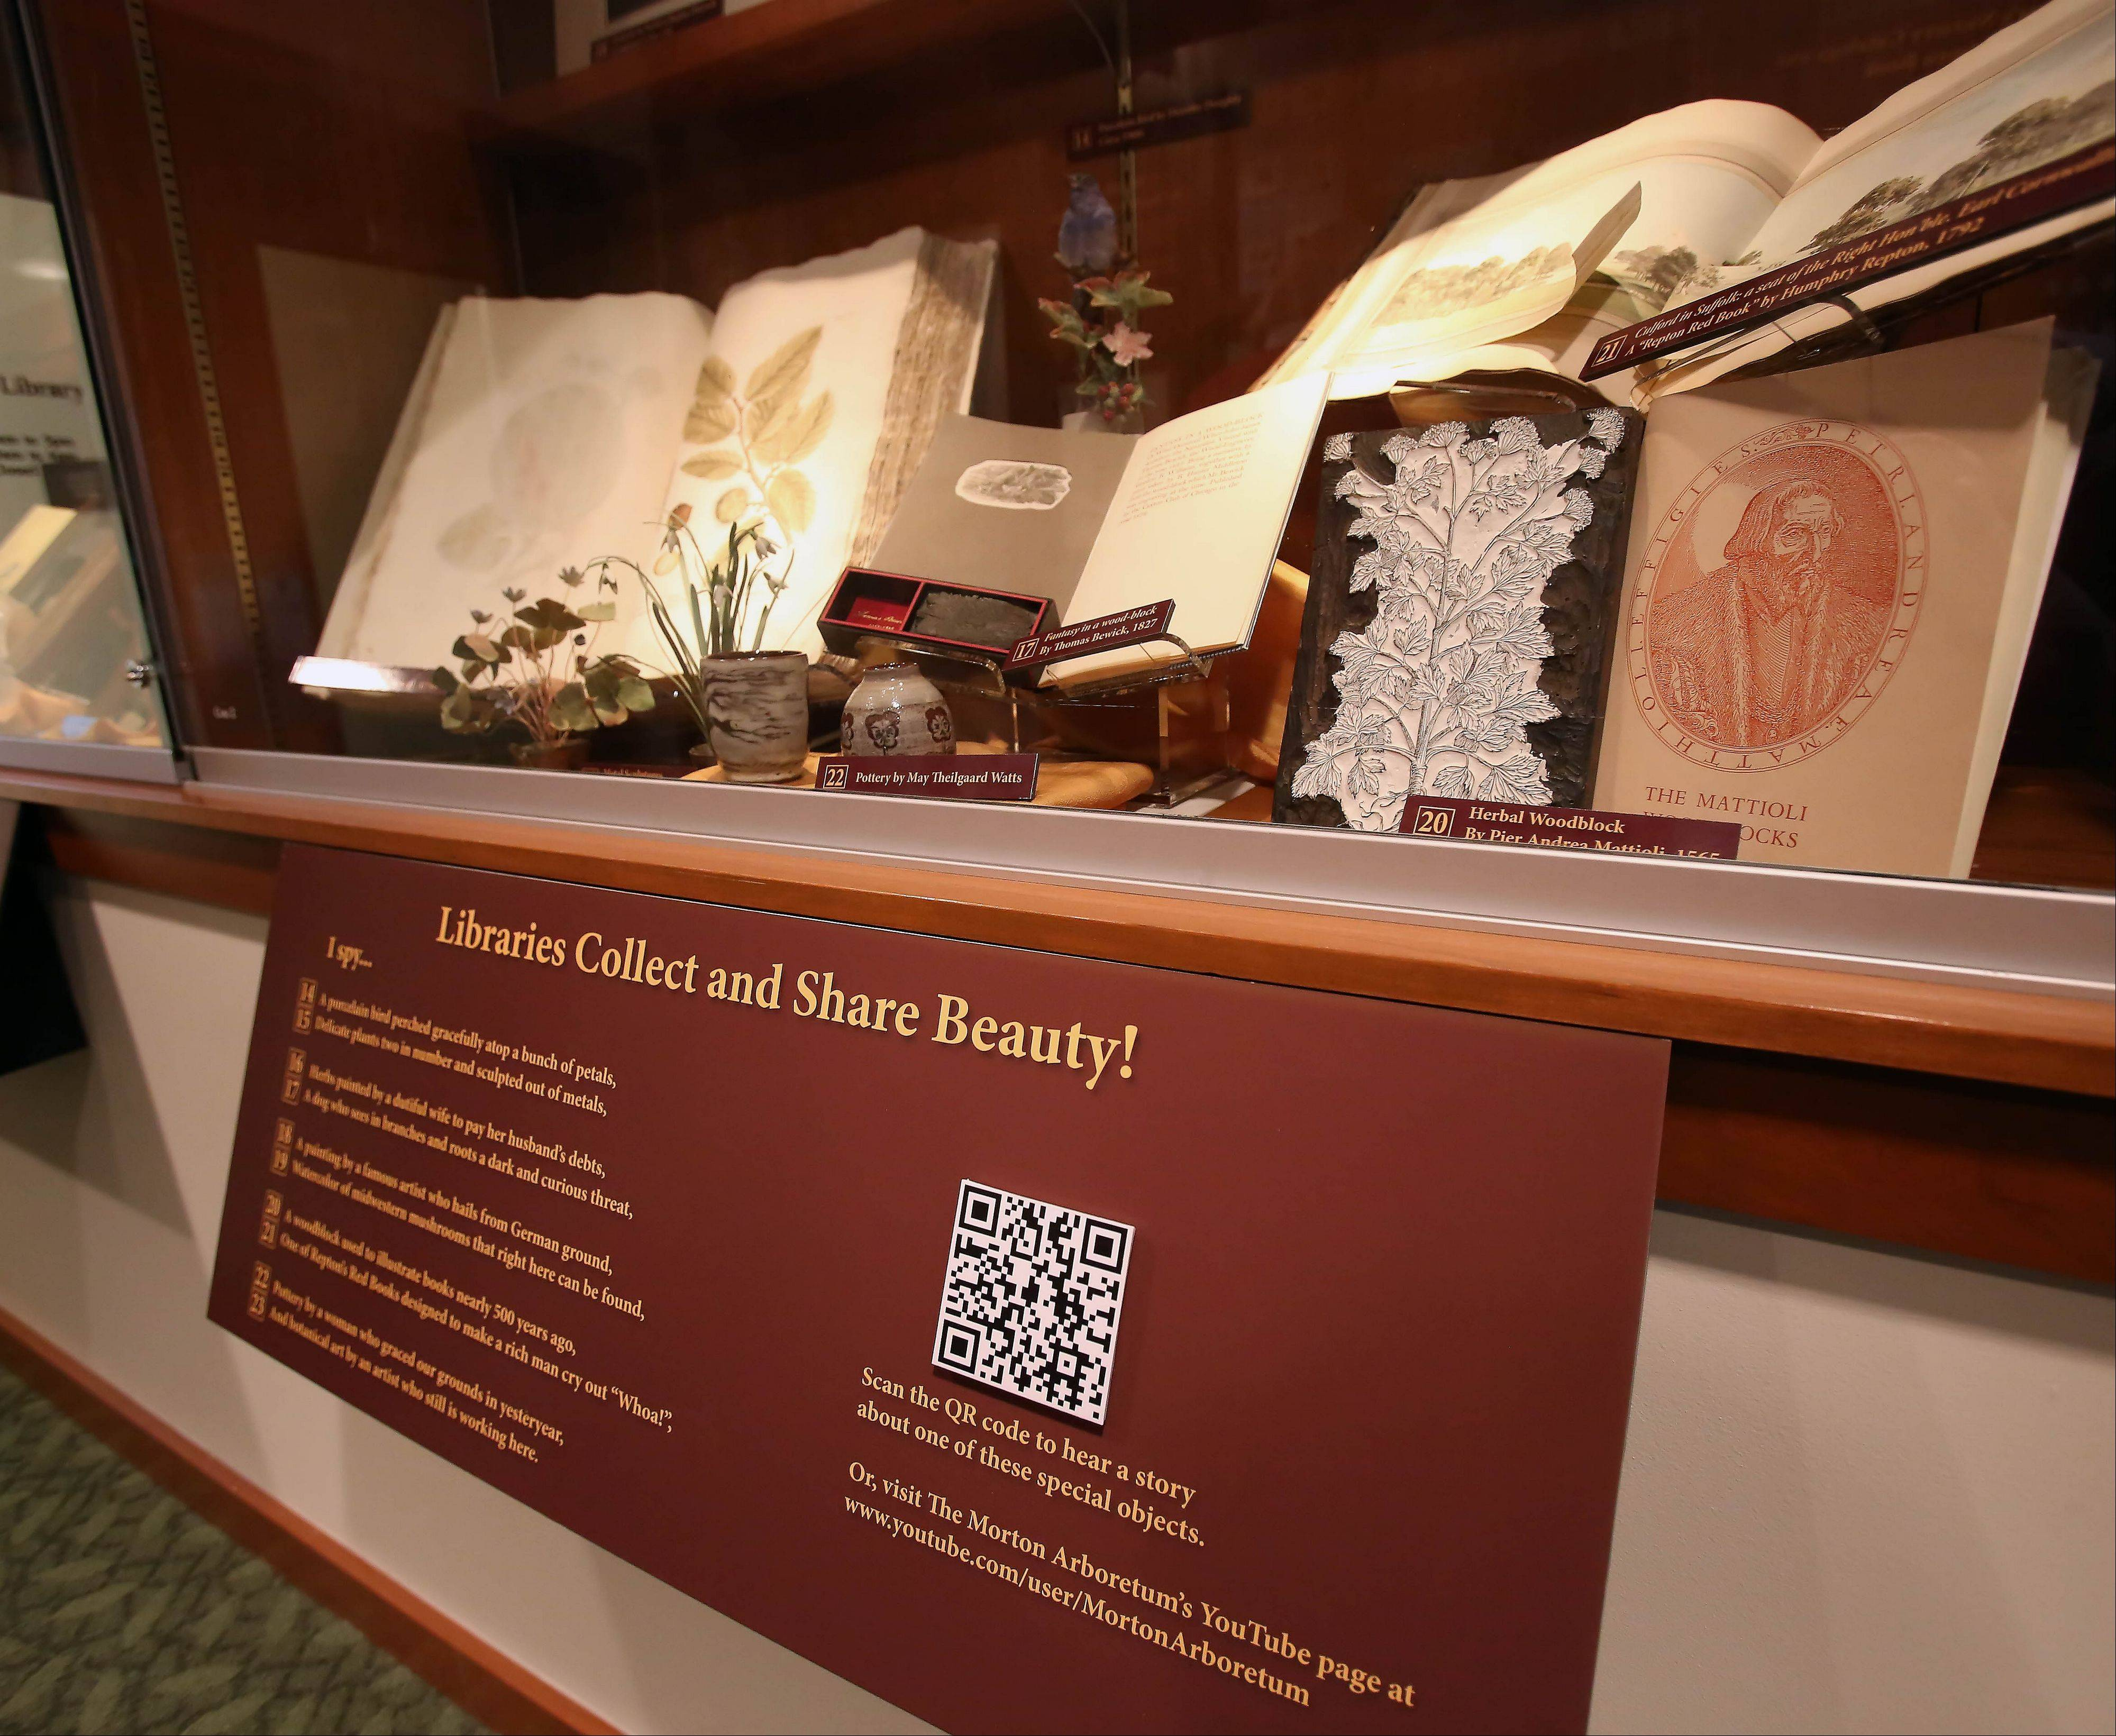 The exhibit includes QR codes that patrons can scan into their smartphones for more information on particular items.